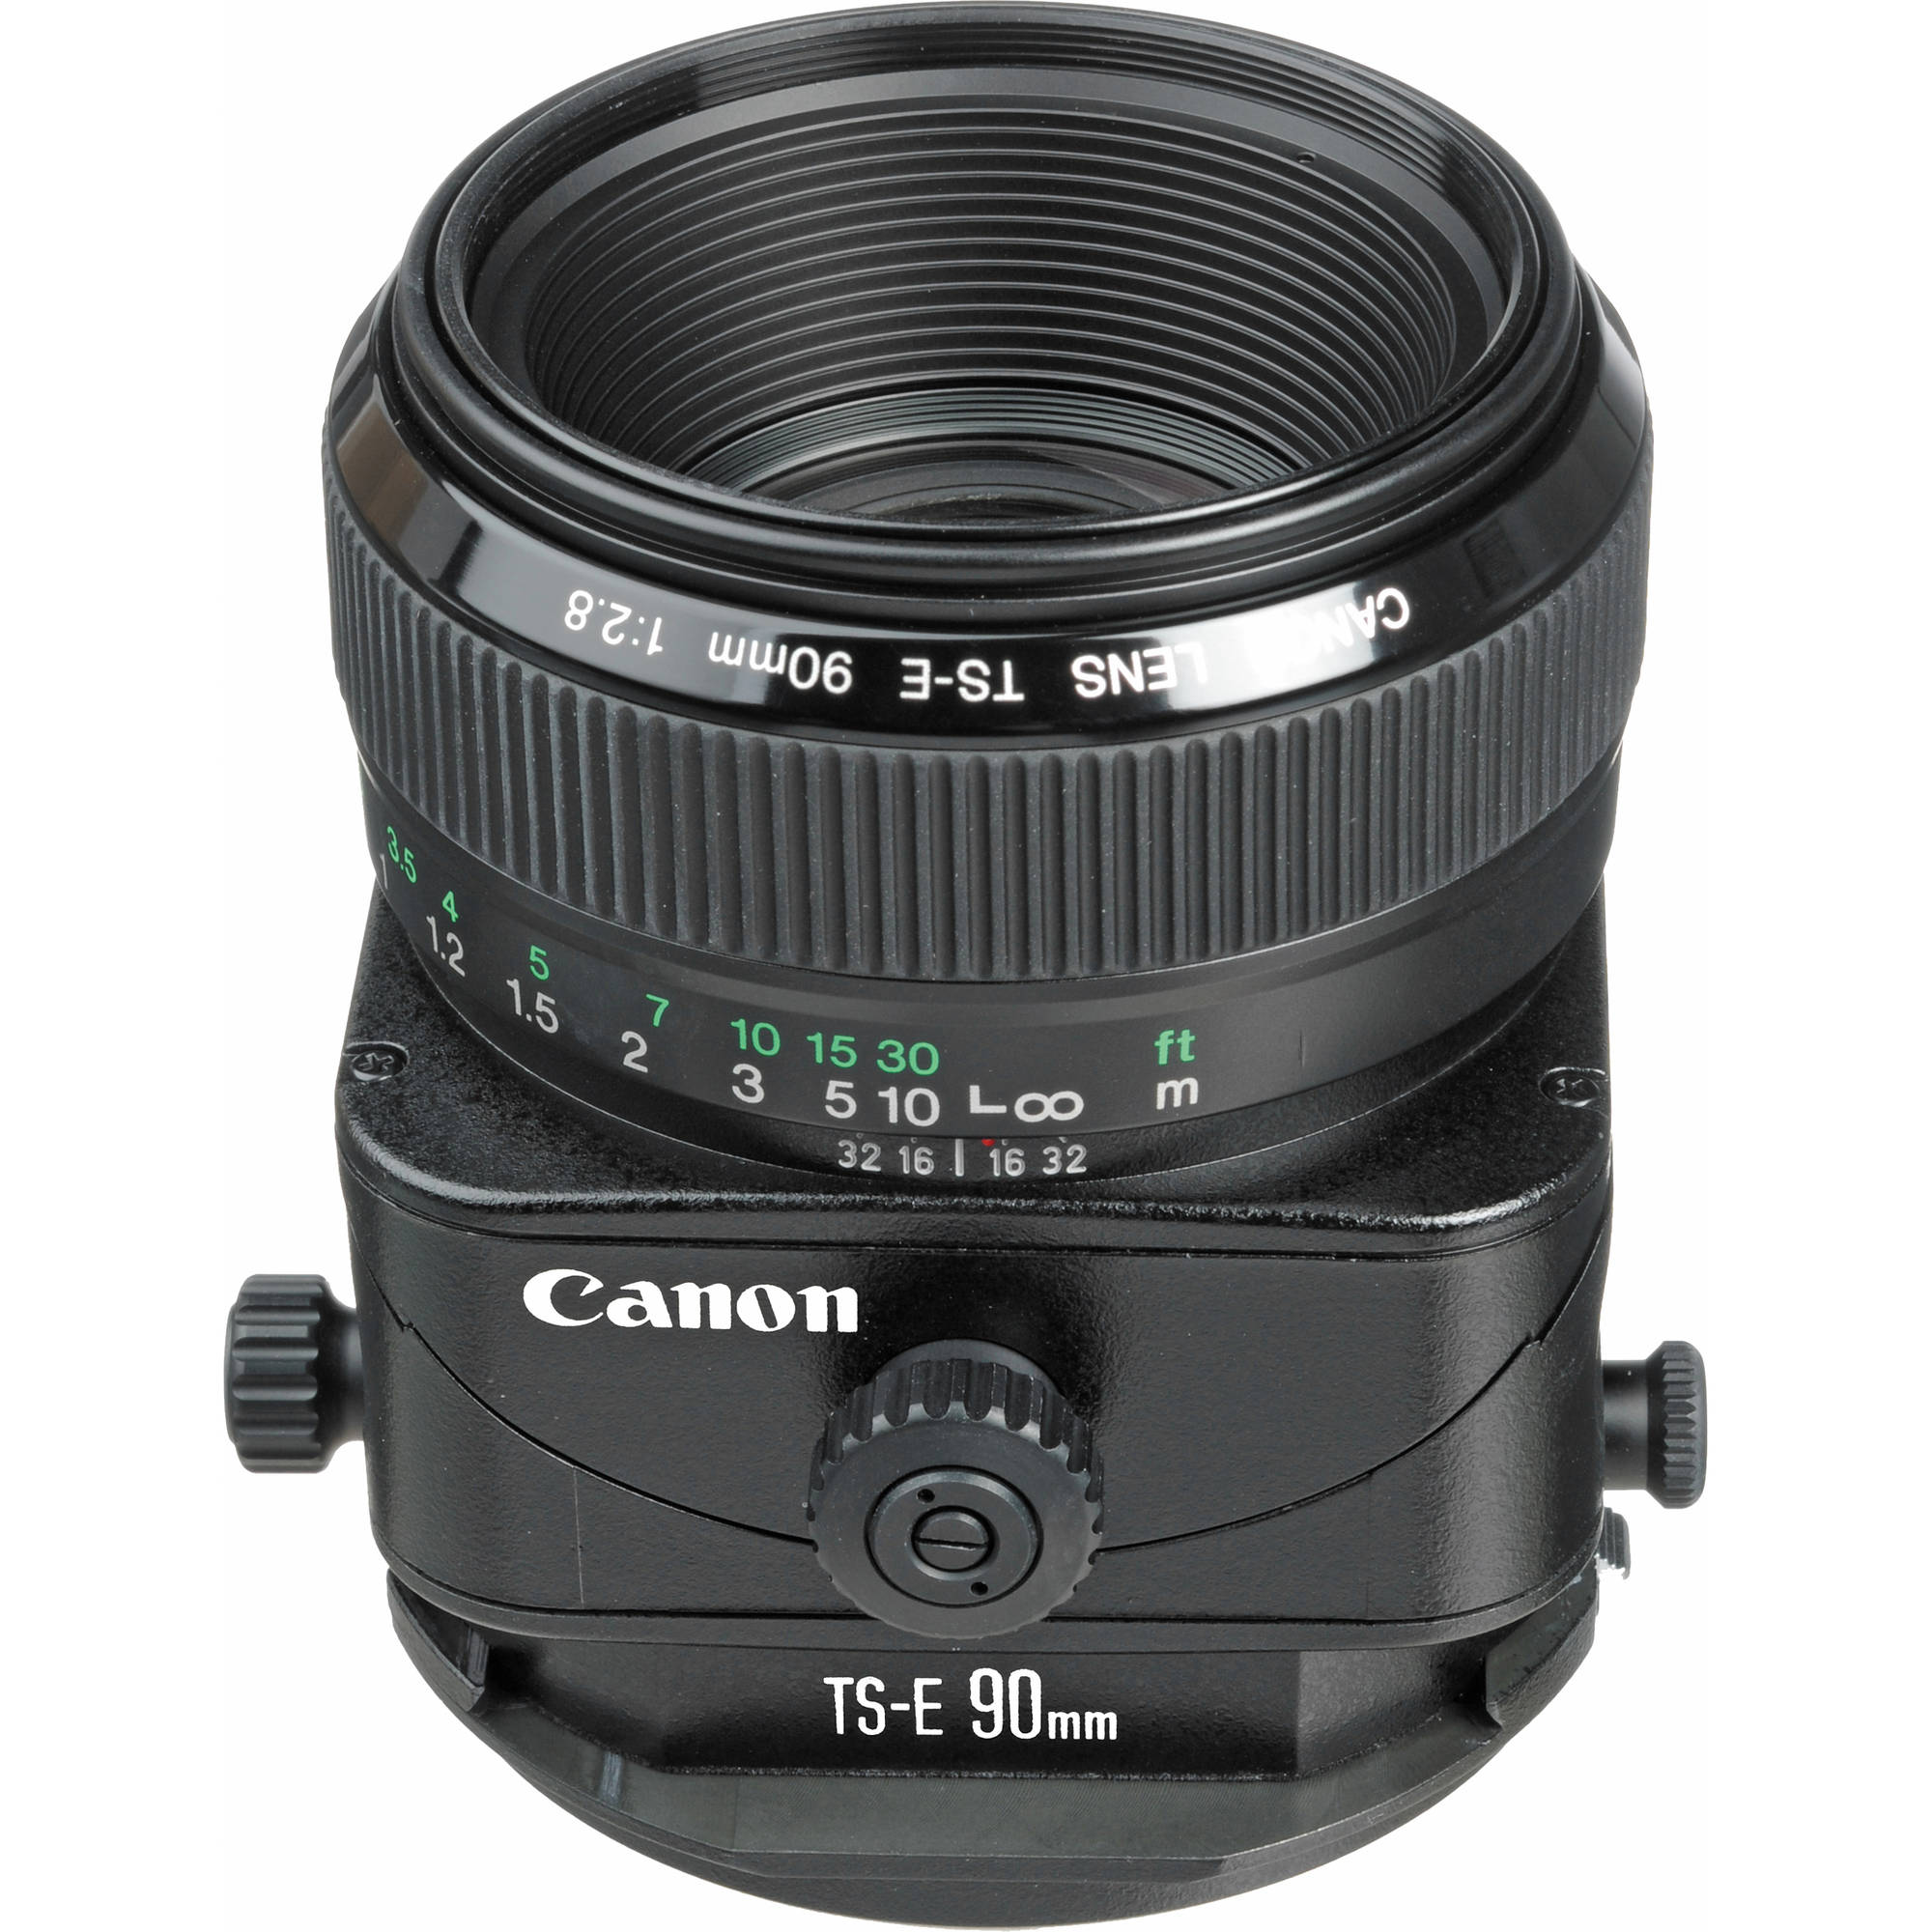 Image of Canon TS-E 90mm f/2.8 Lens